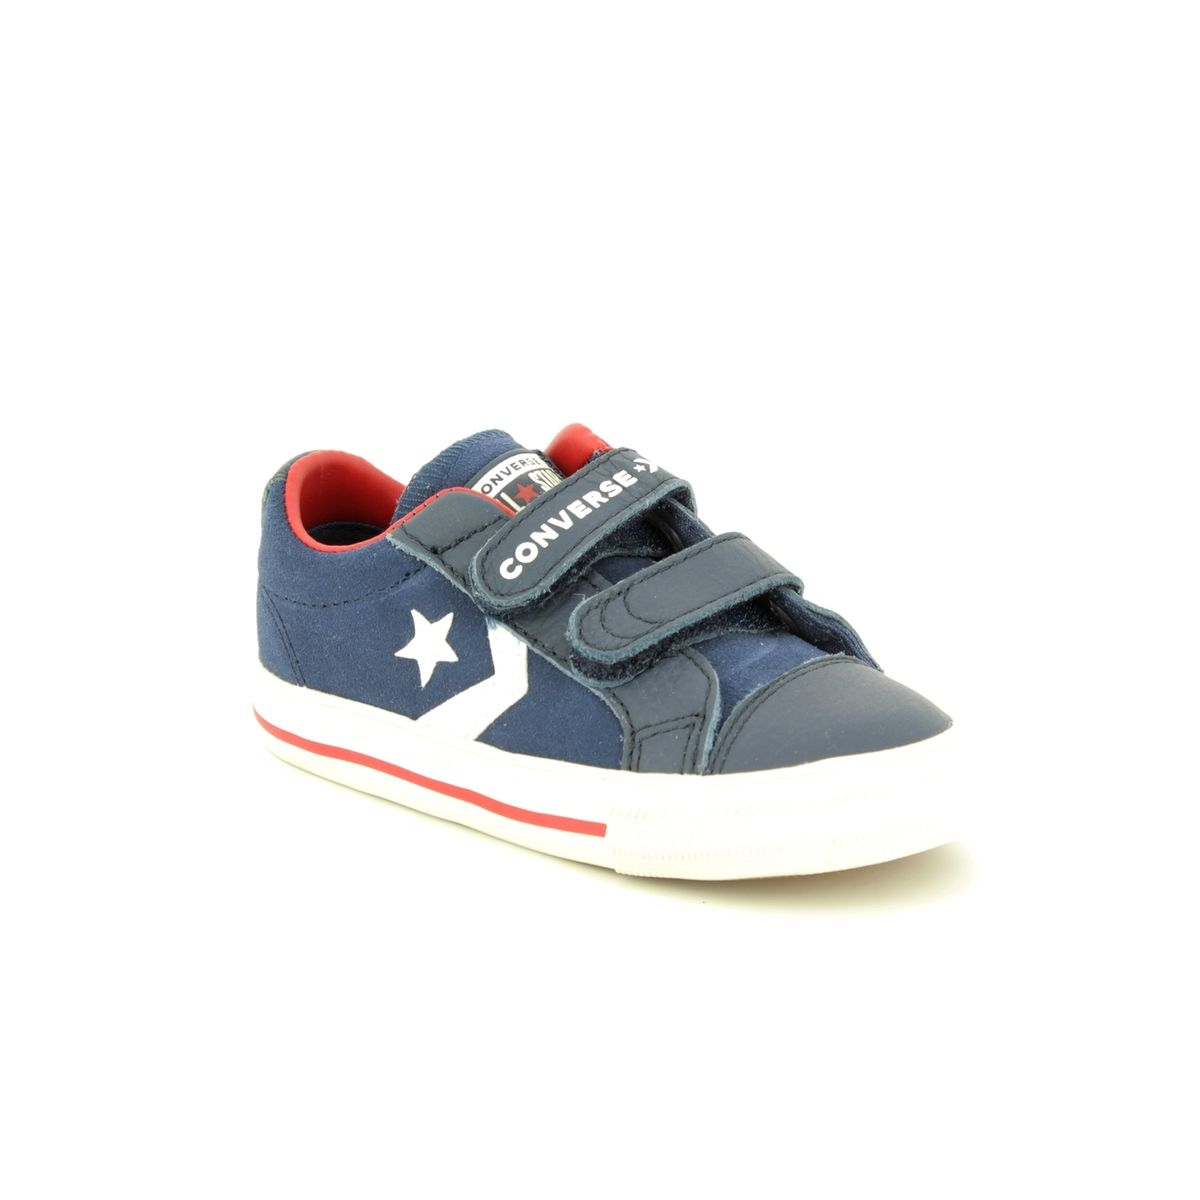 4f80333b98c Converse Star Player Velcro 762767C Navy suede boys trainers